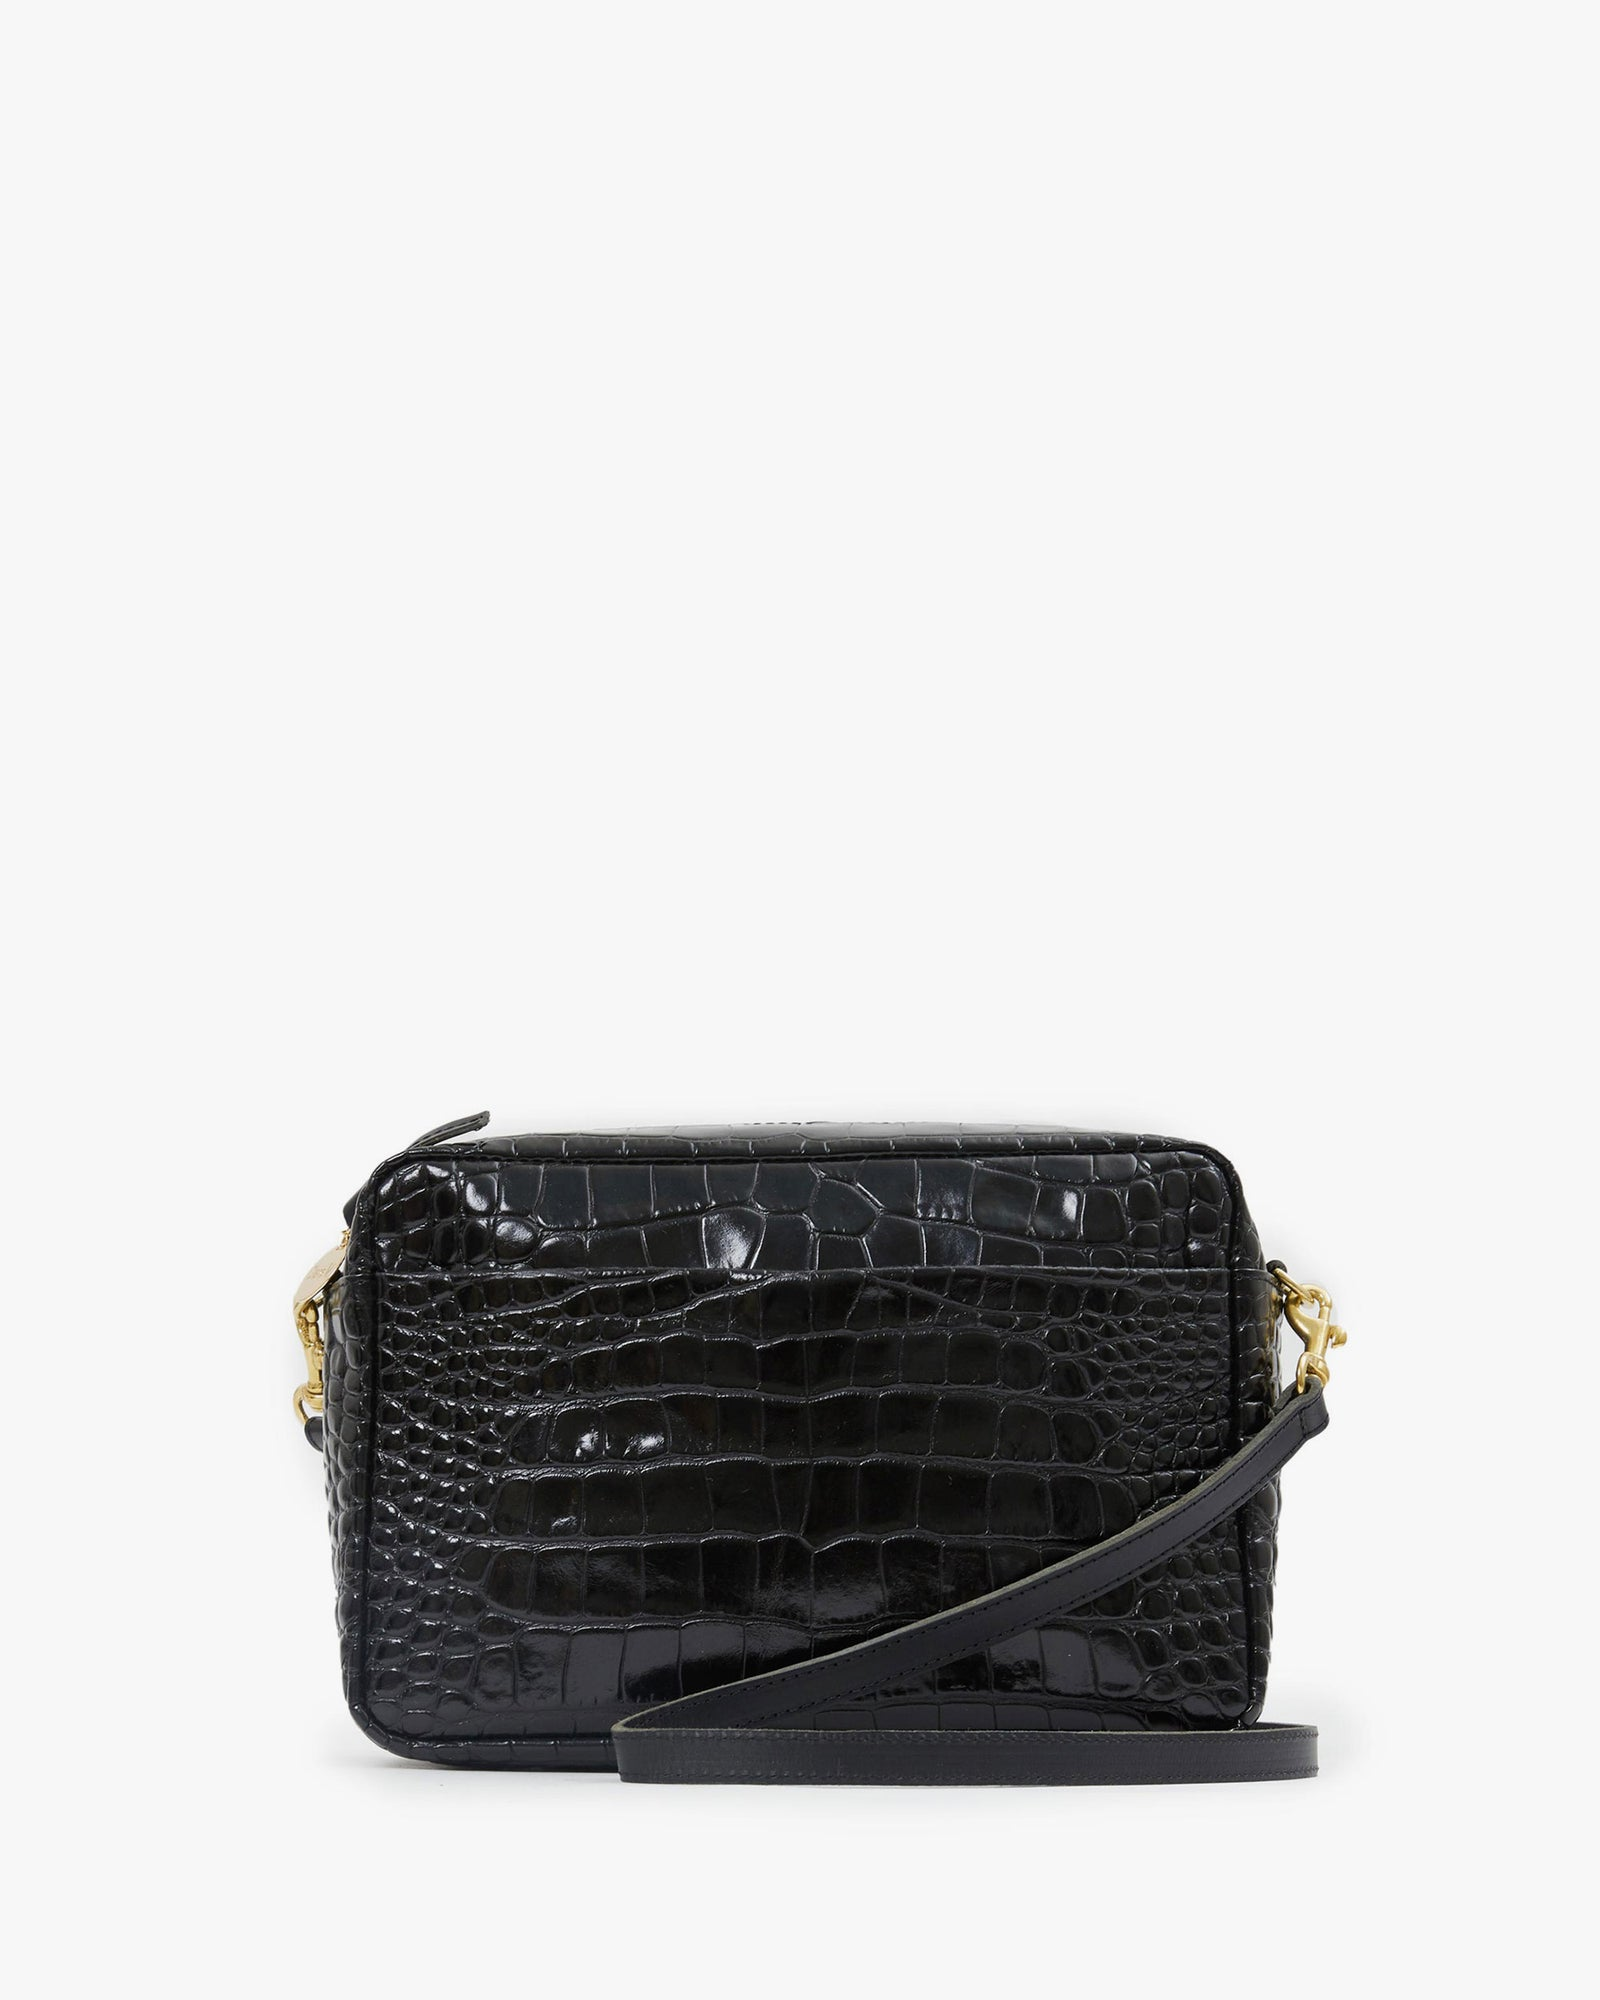 Black Croco Marisol with Front Pocket